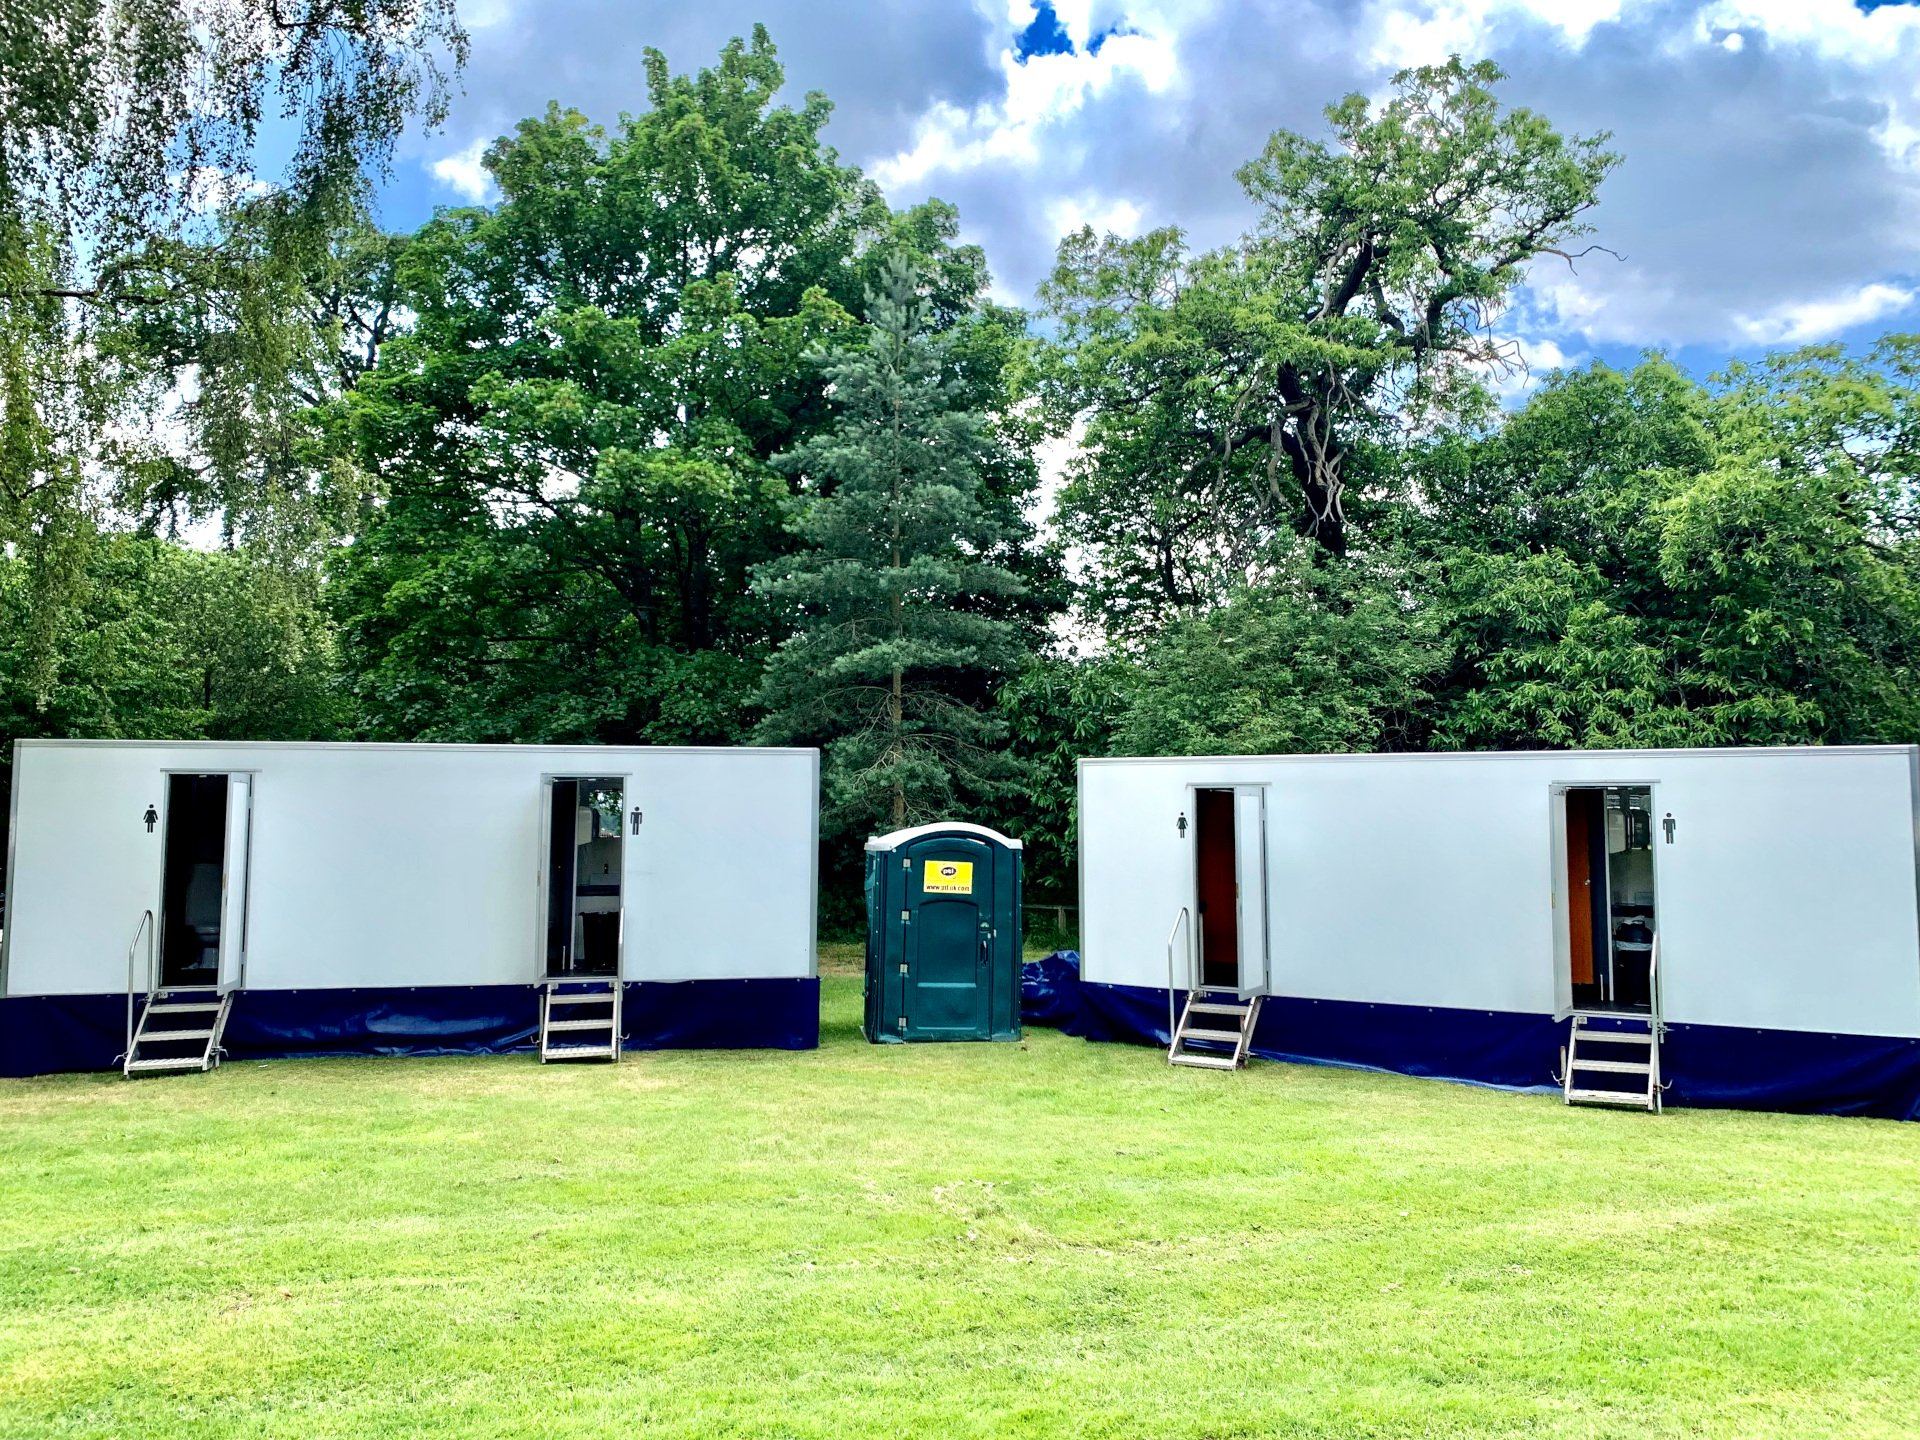 Iconic toilet hire by Guards Polo Club